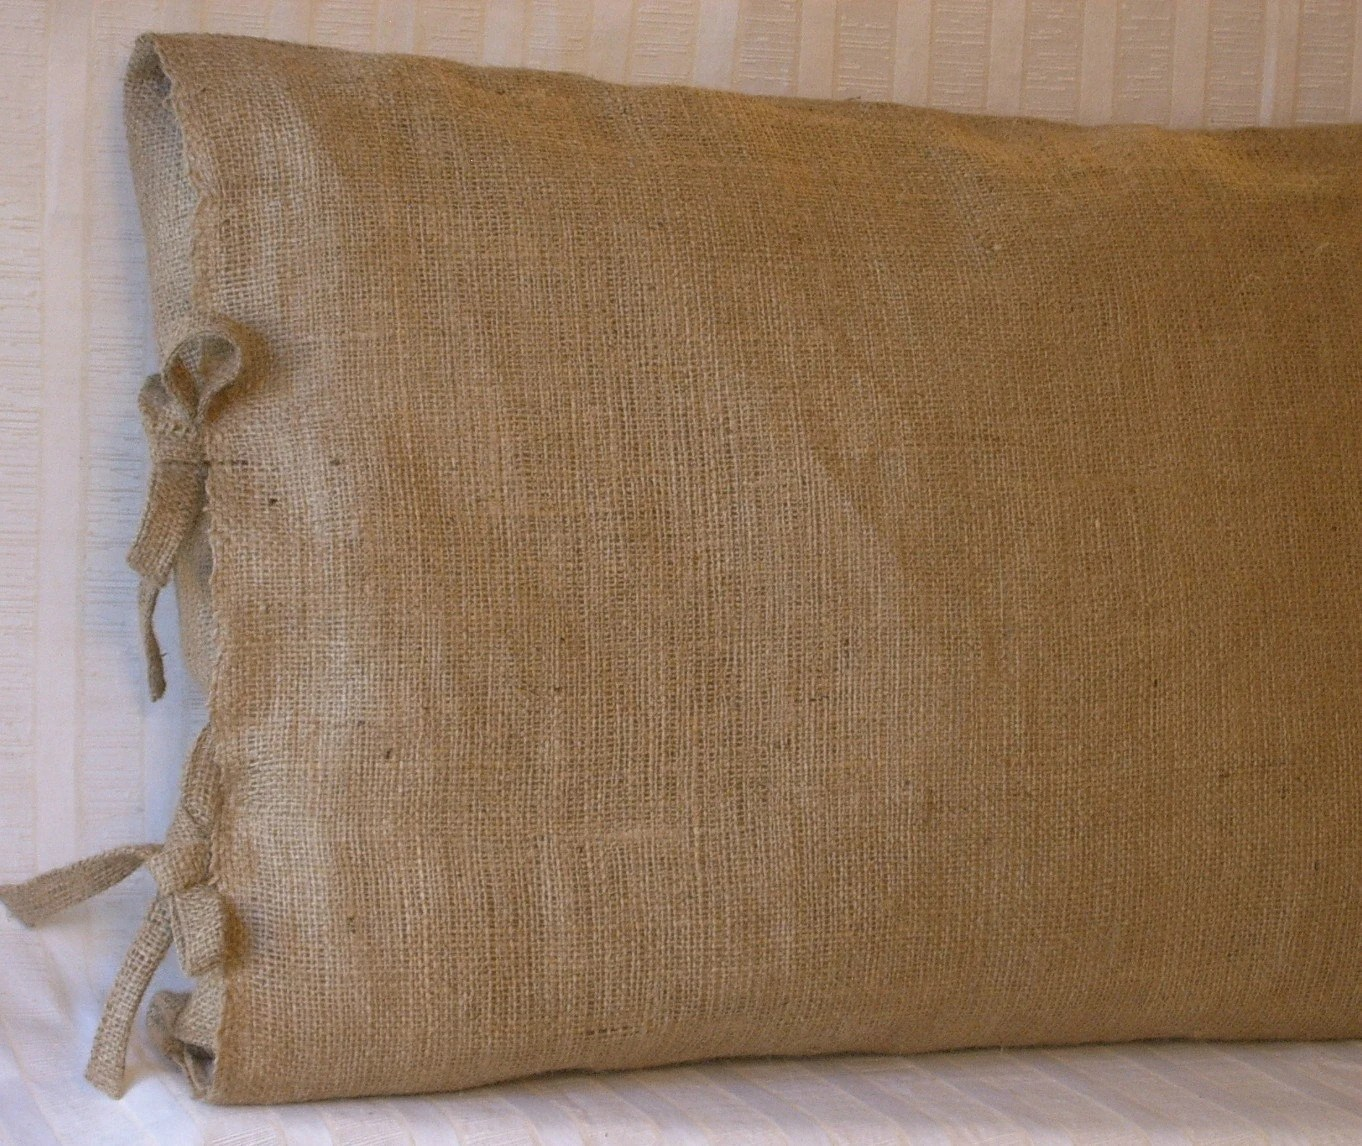 2 King Burlap Pillow Shams With Tie Closure 36 X